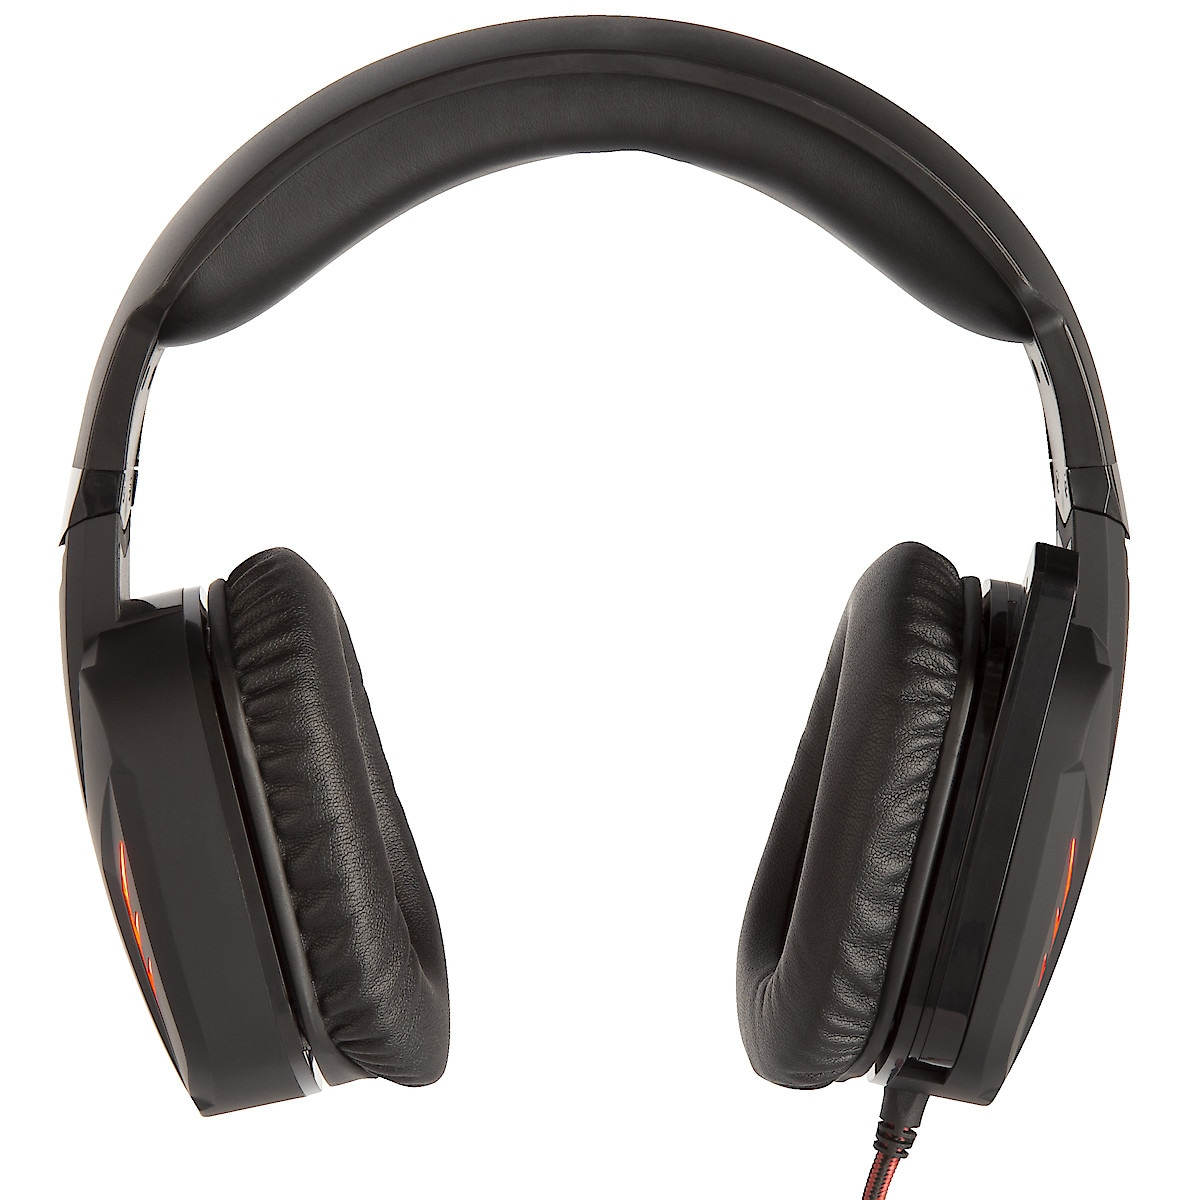 Exibel GHX 5 gaming headset USB | Clas Ohlson